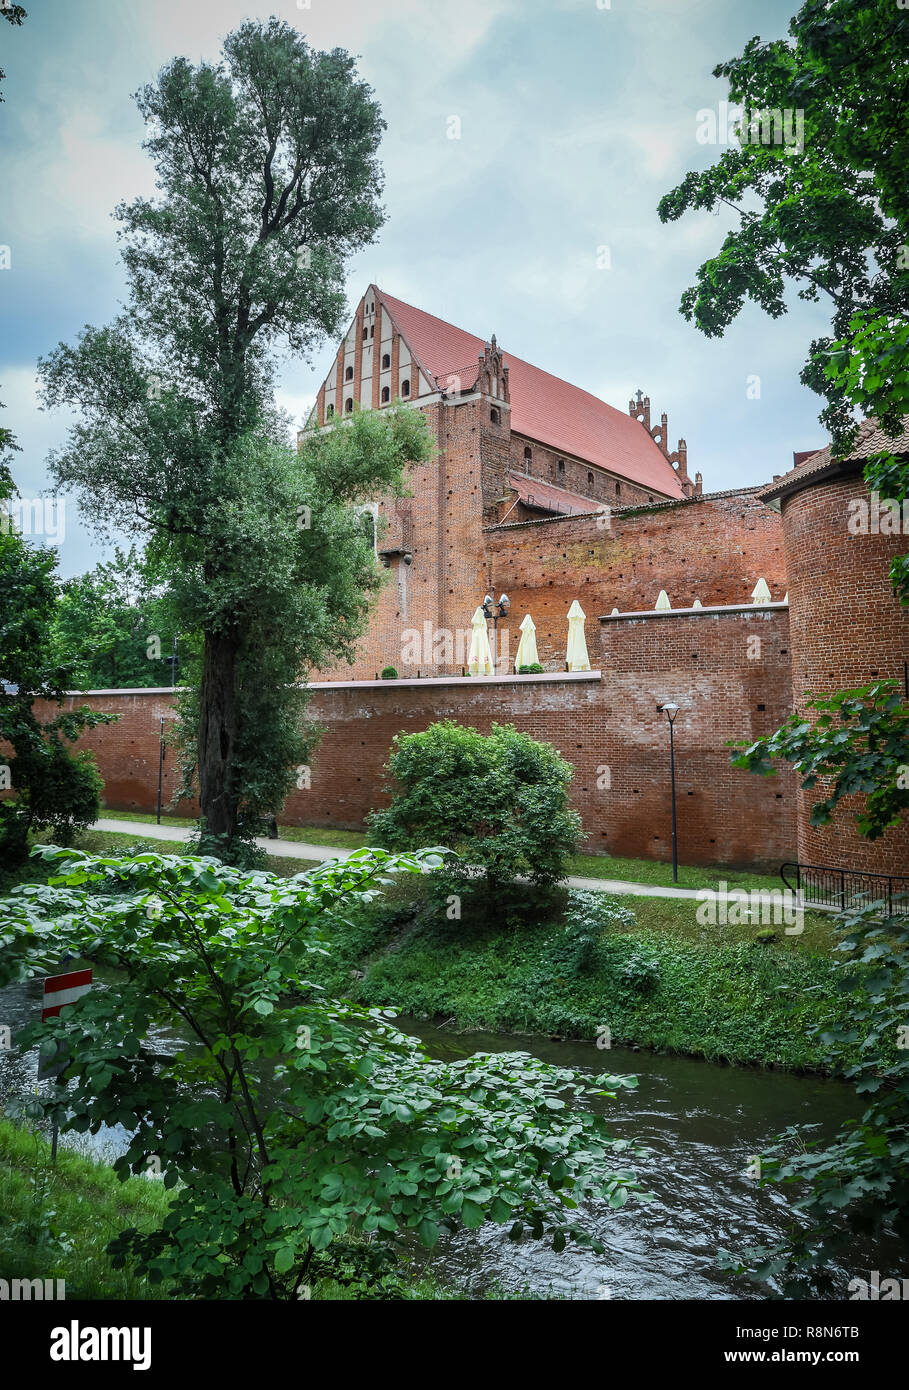 Ordensburg castle in Olsztyn, Poland. View from Lyna river. - Stock Image